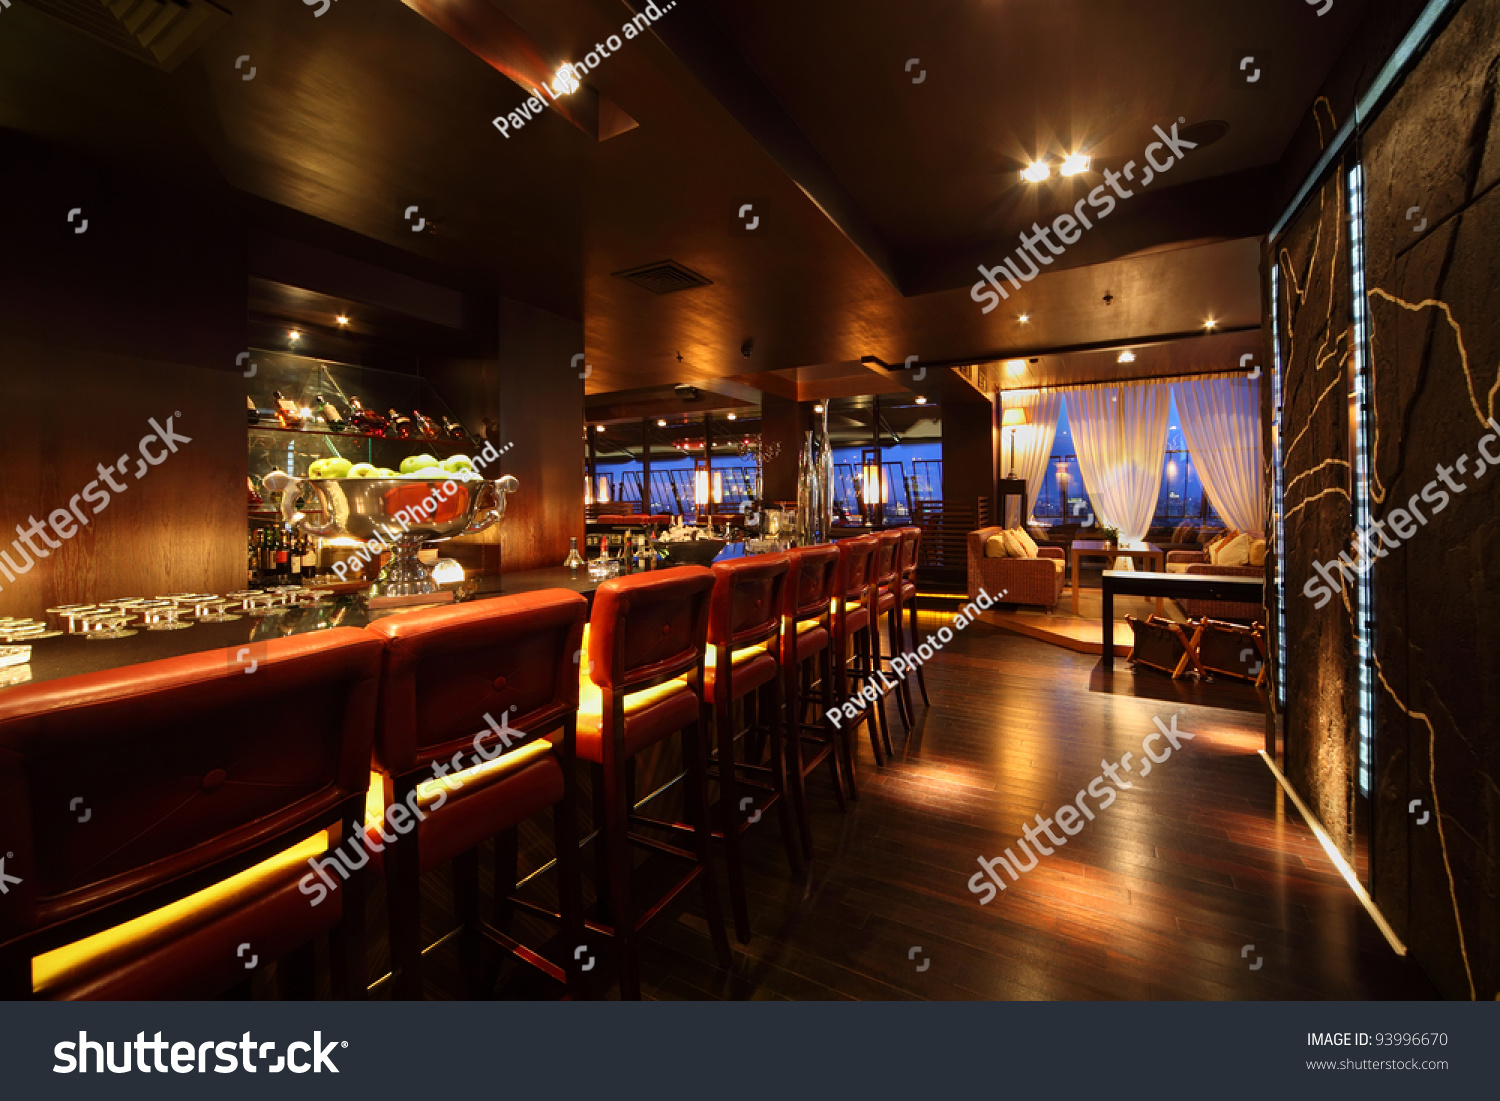 Bar Counter With Chairs In Empty Comfortable Restaurant At Night